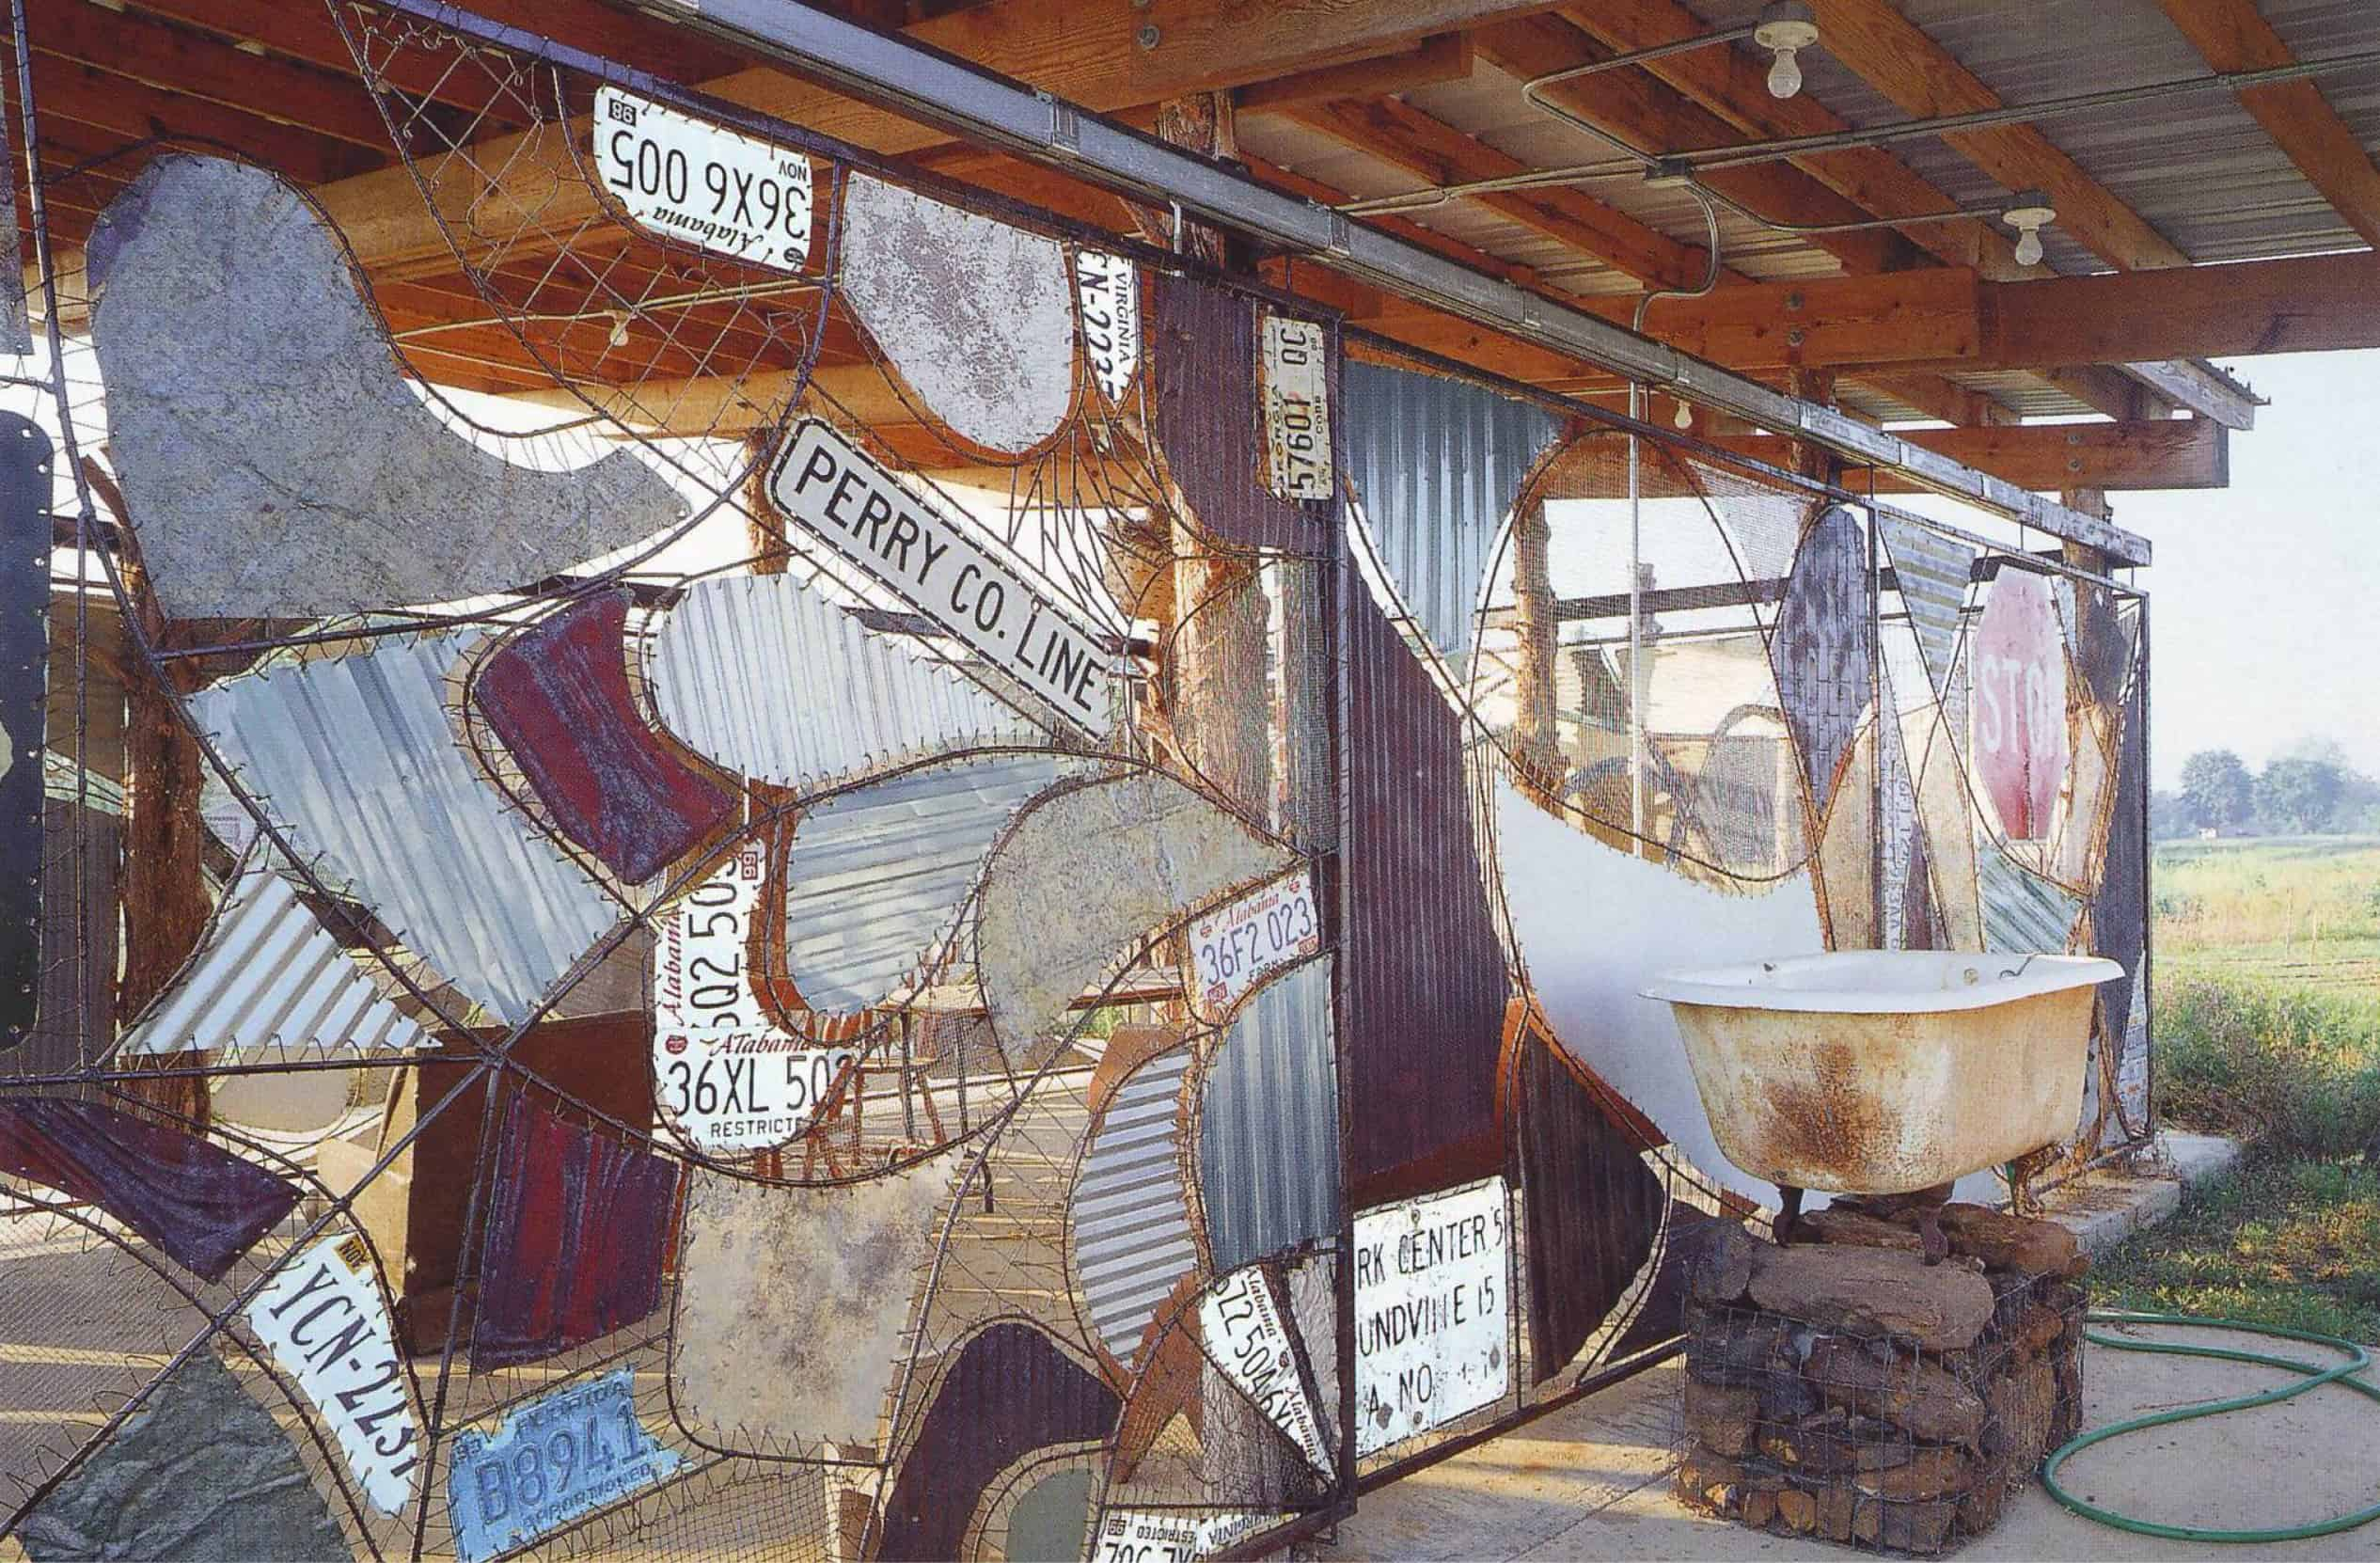 side view of stand showing wall made of scraps (license plates, road signs, corrugated metal)